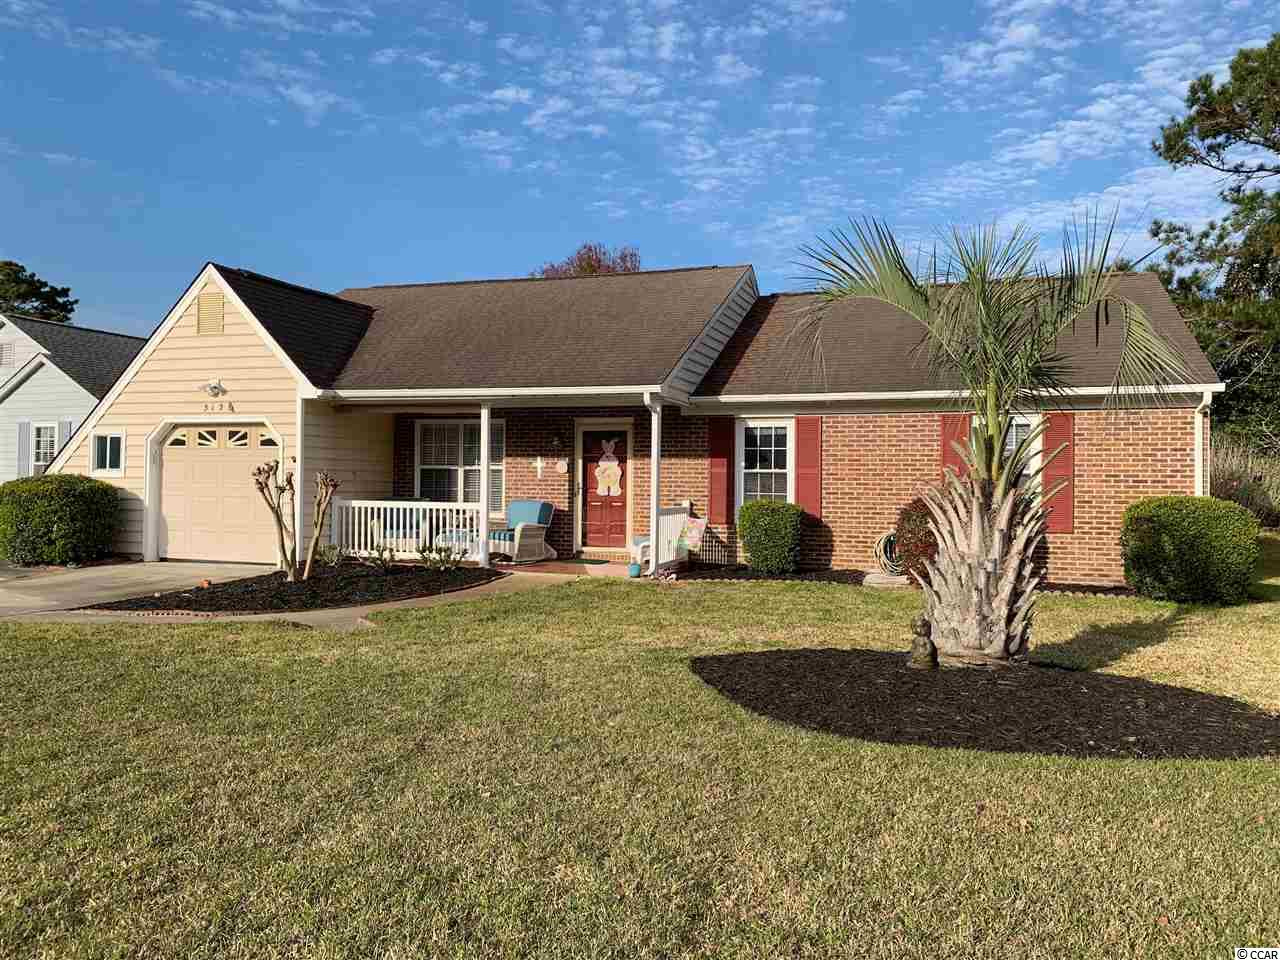 Ready to move in 3br 2bath home with 1 1/2 car garage with double driveway and beautiful Carolina room. Enjoy your southern evenings from your front porch or back patio. Furnishings and window coverings convey. Plenty of storage with 2 attics and workshop area in the garage. Master has his and her closets. 2 Linen closets. Located in Woodlake Village 55+community. Games, Tennis, Pickle-ball, swimming, shuffle board, dinners, dances, cards, bowling and much more! Golf Cart to the beach, shopping, groci store and more. Enjoy the Marsh walk, Brookgreen gardens and Hunting Beach State Park.